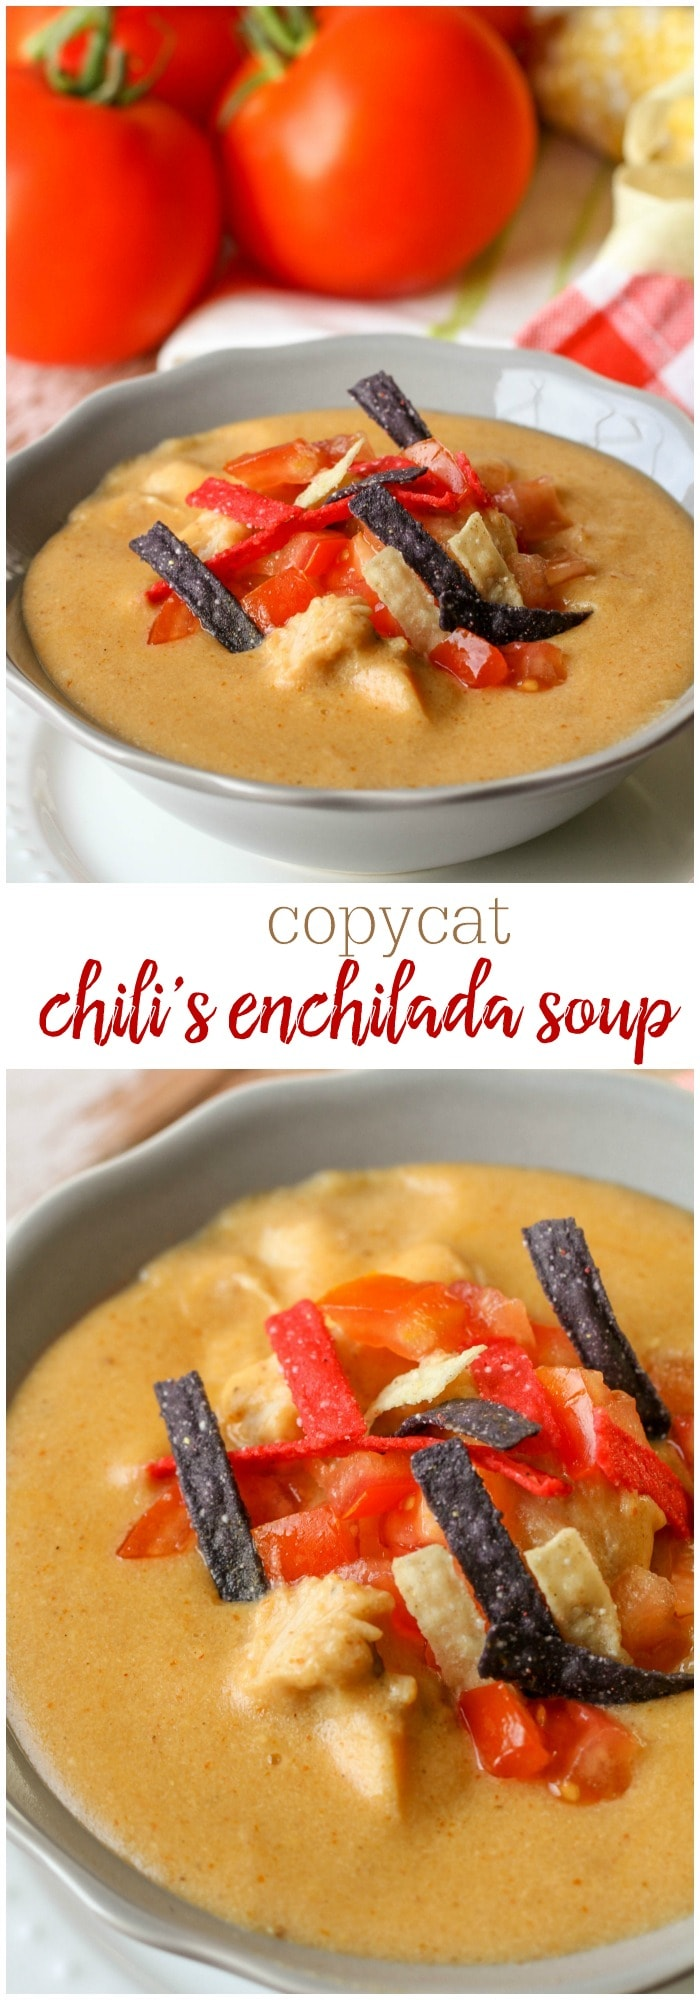 copycat chili s enchilada soup this soup recipe tastes just like the